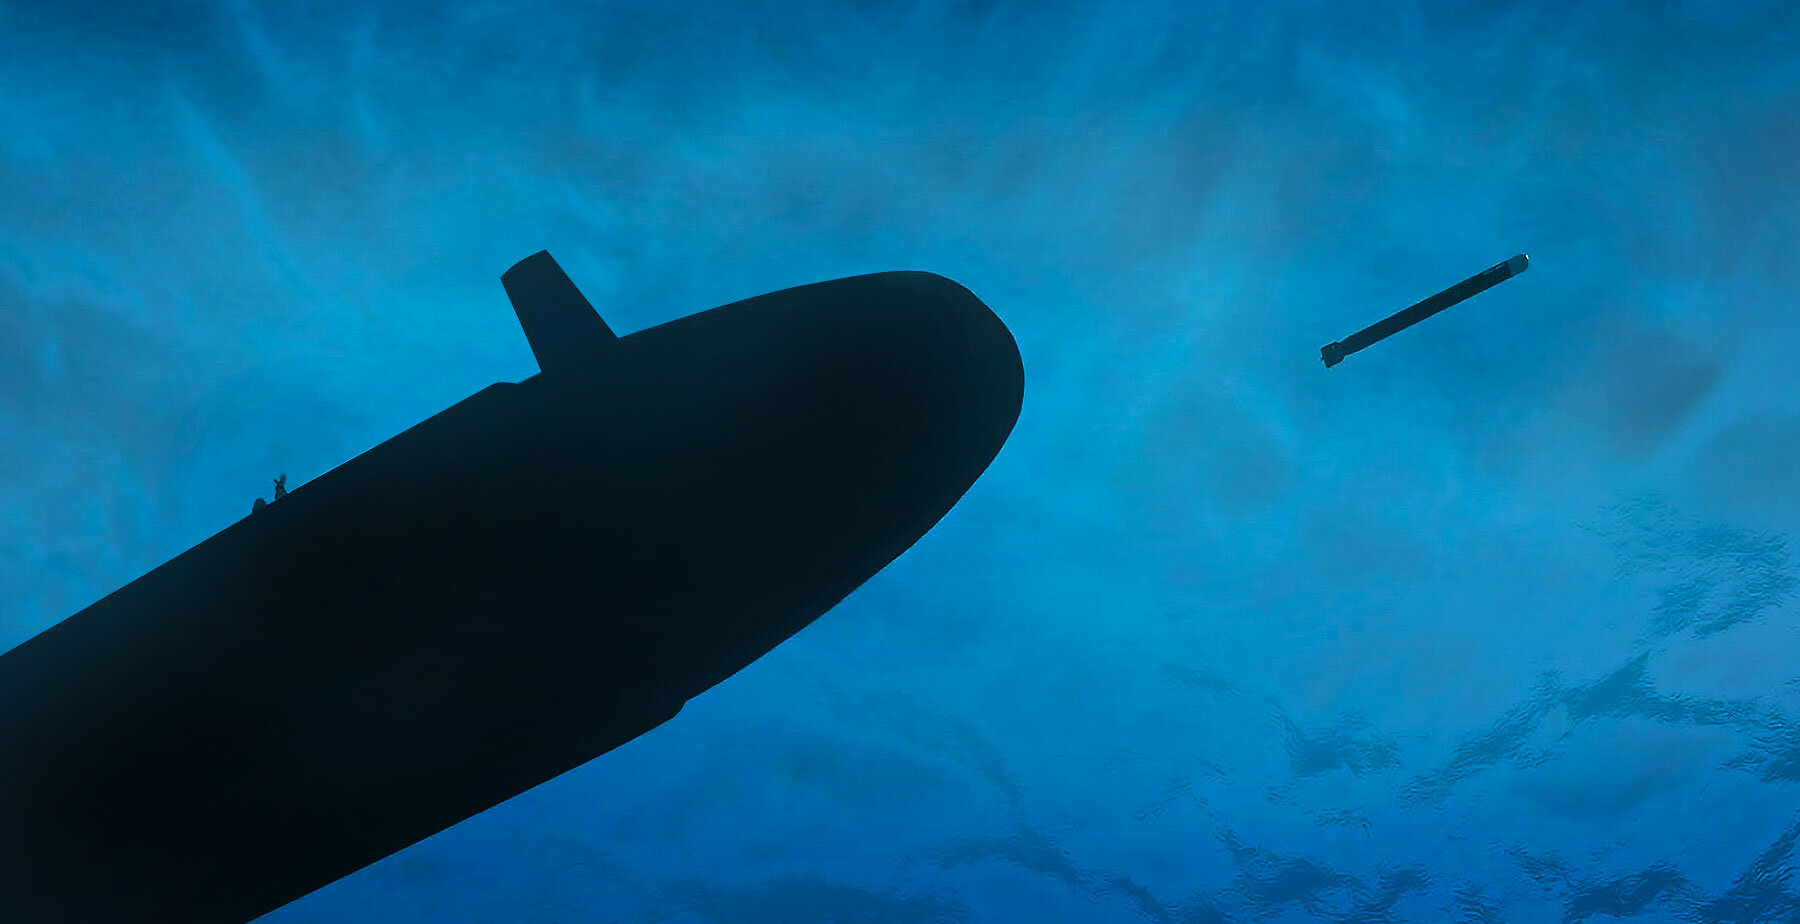 Spearfish Mod 1 torpedo goes into service after final trials by HMS Audacious